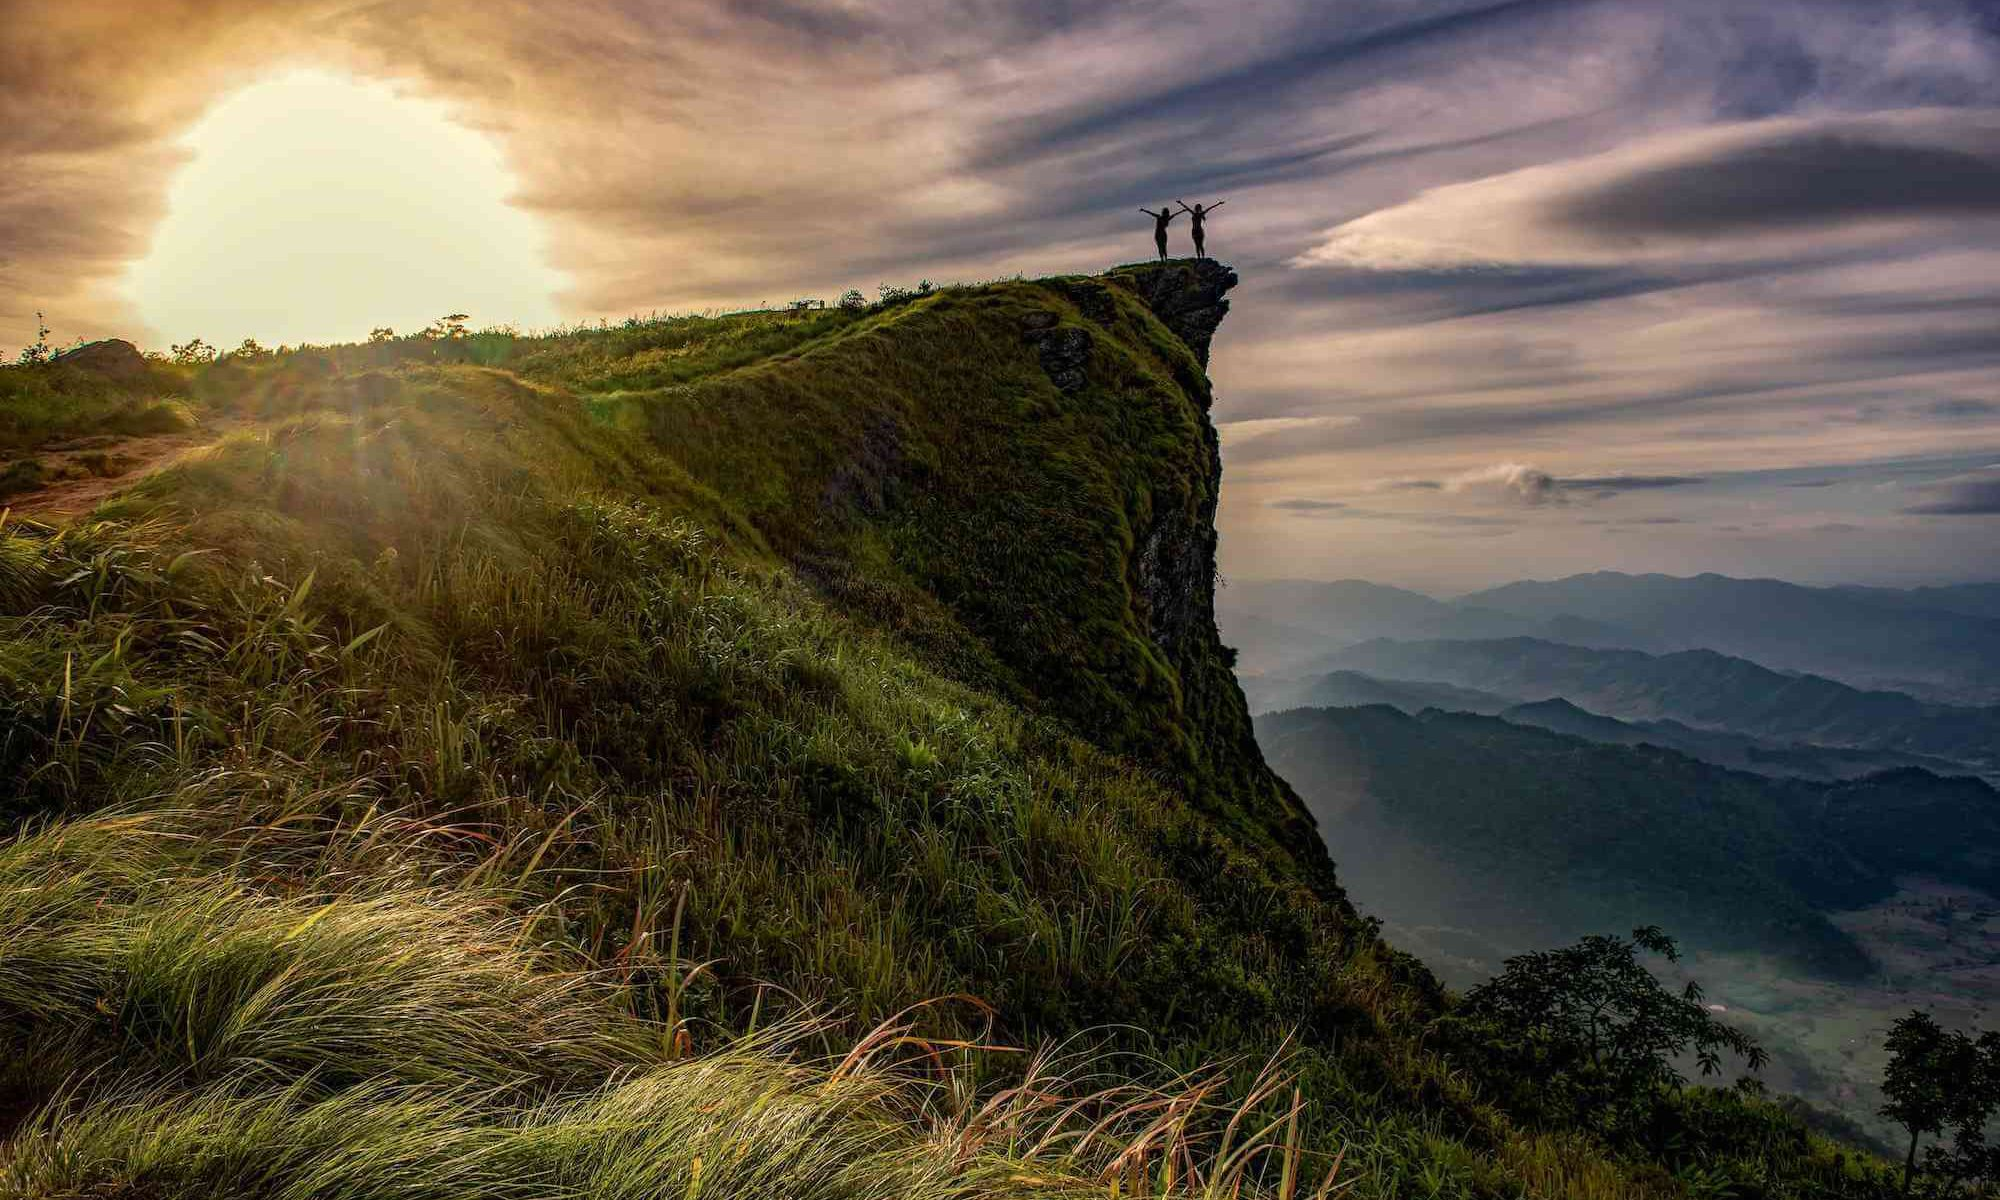 Two distant figures standing on top of a cliff